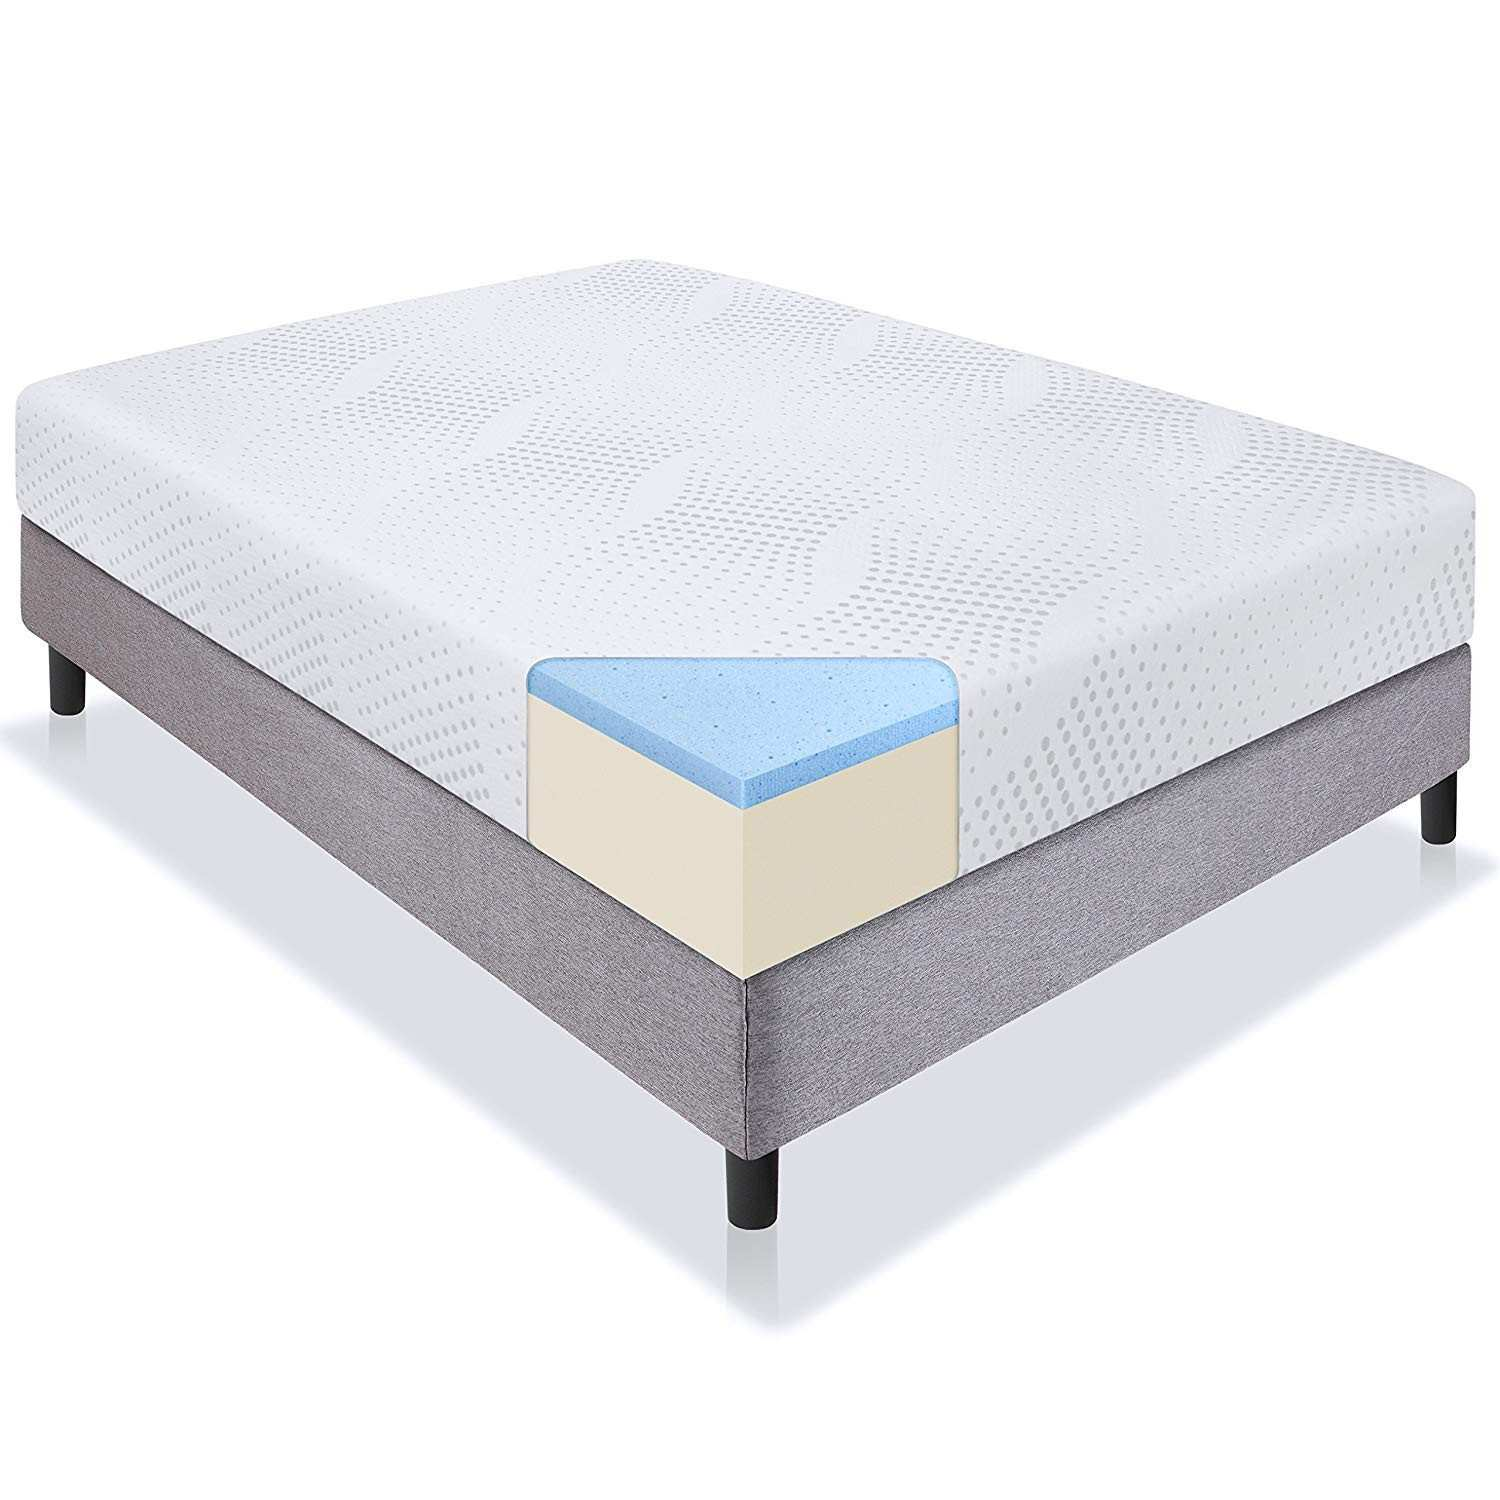 Cheap Bed Mattress and Frame Awesome Replacement sofa Bed Mattress